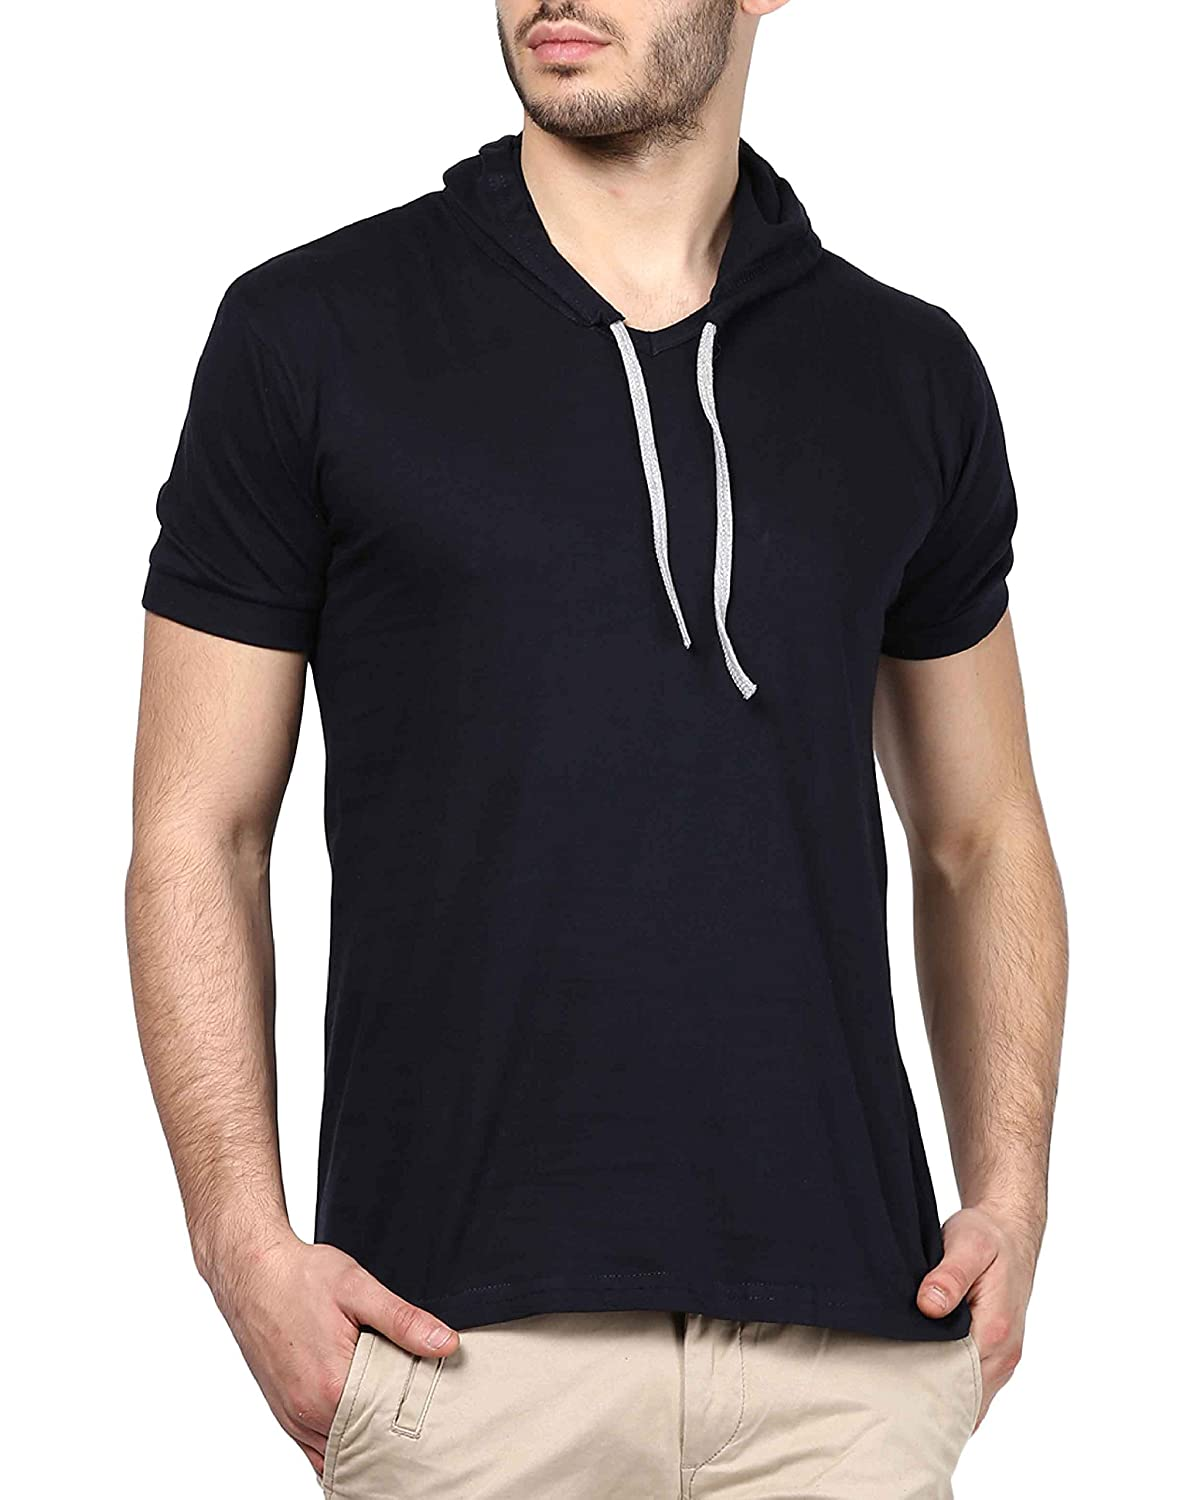 9efd5f4bb6 Combine the T shirts with Jeans or Lowers to complete your look. Sleeve  Type: Half Sleeve ; Neck type VNeck: Fitting ...